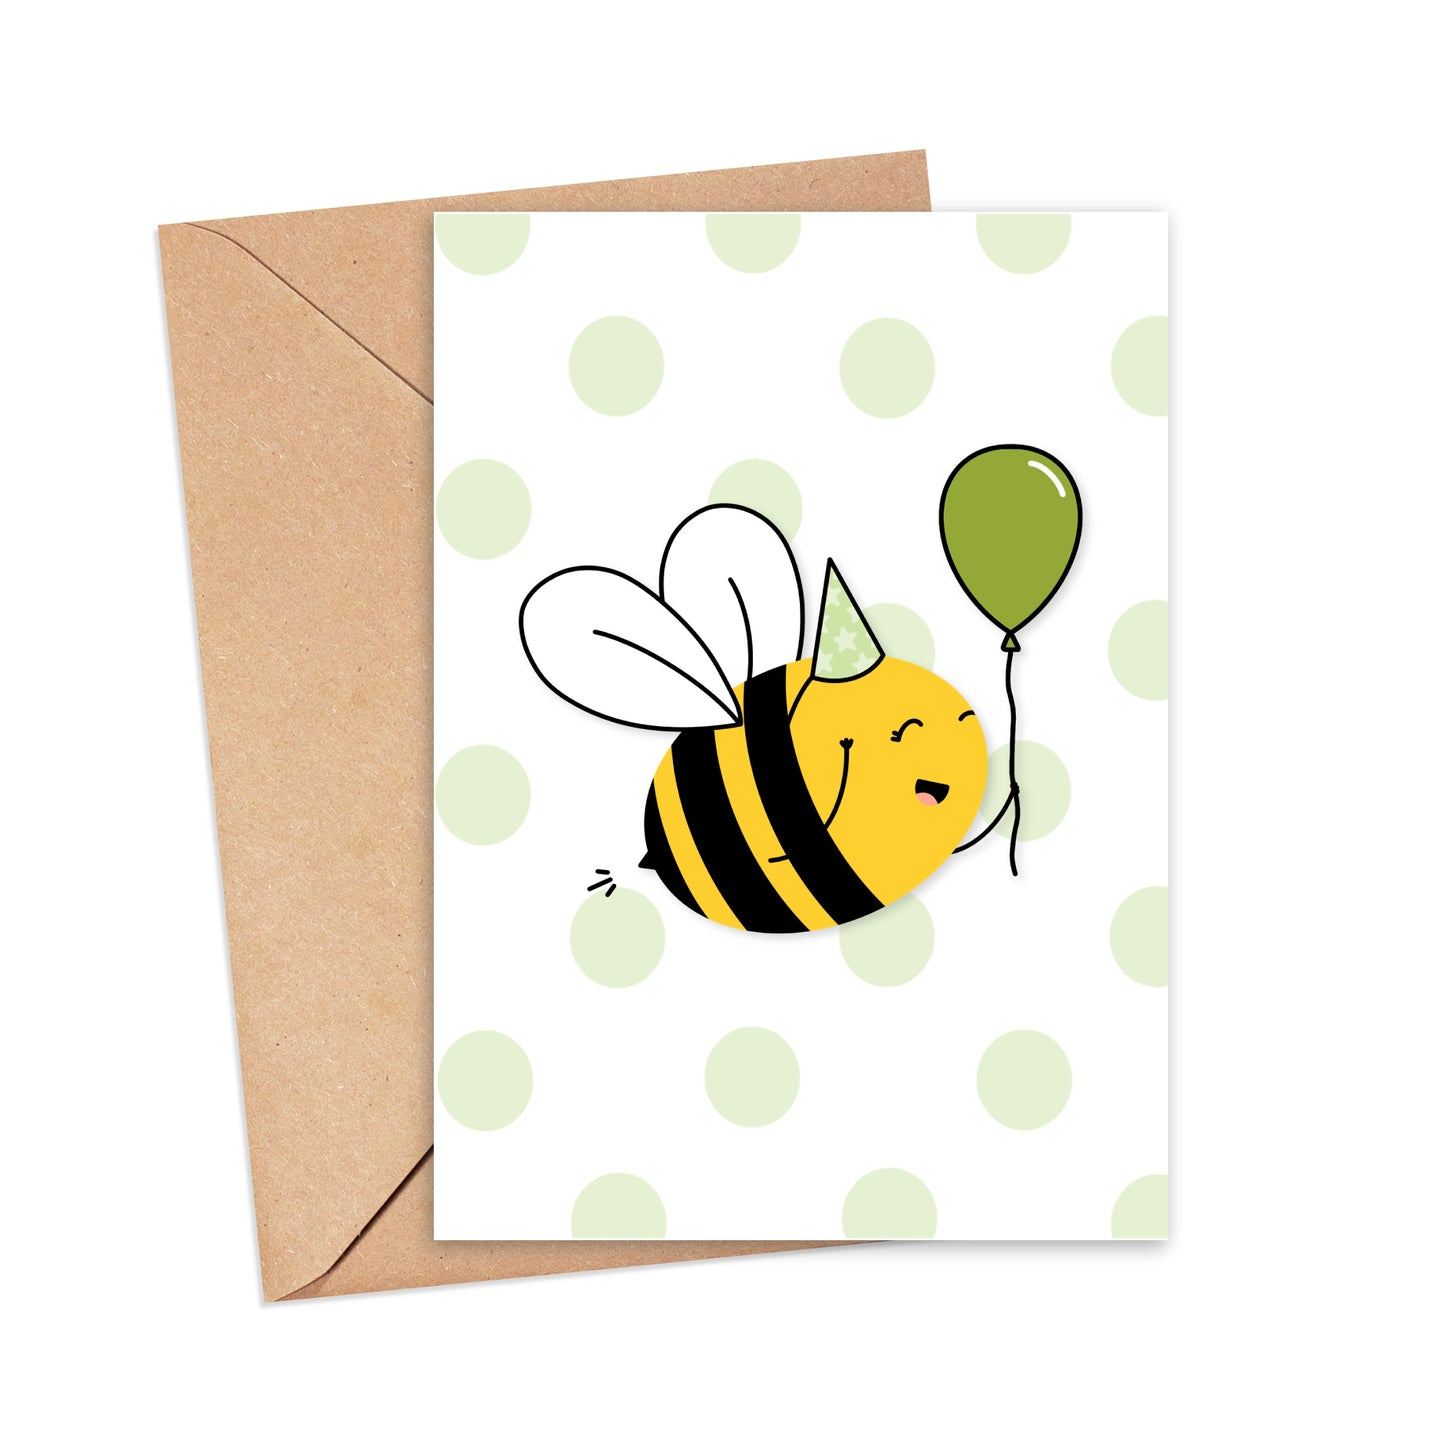 Greetings card featuring an illustration of a cute bee wearing a green star print party hat holding a green balloon, on a pastel green and white polka dot background, by Lulibell Studio.